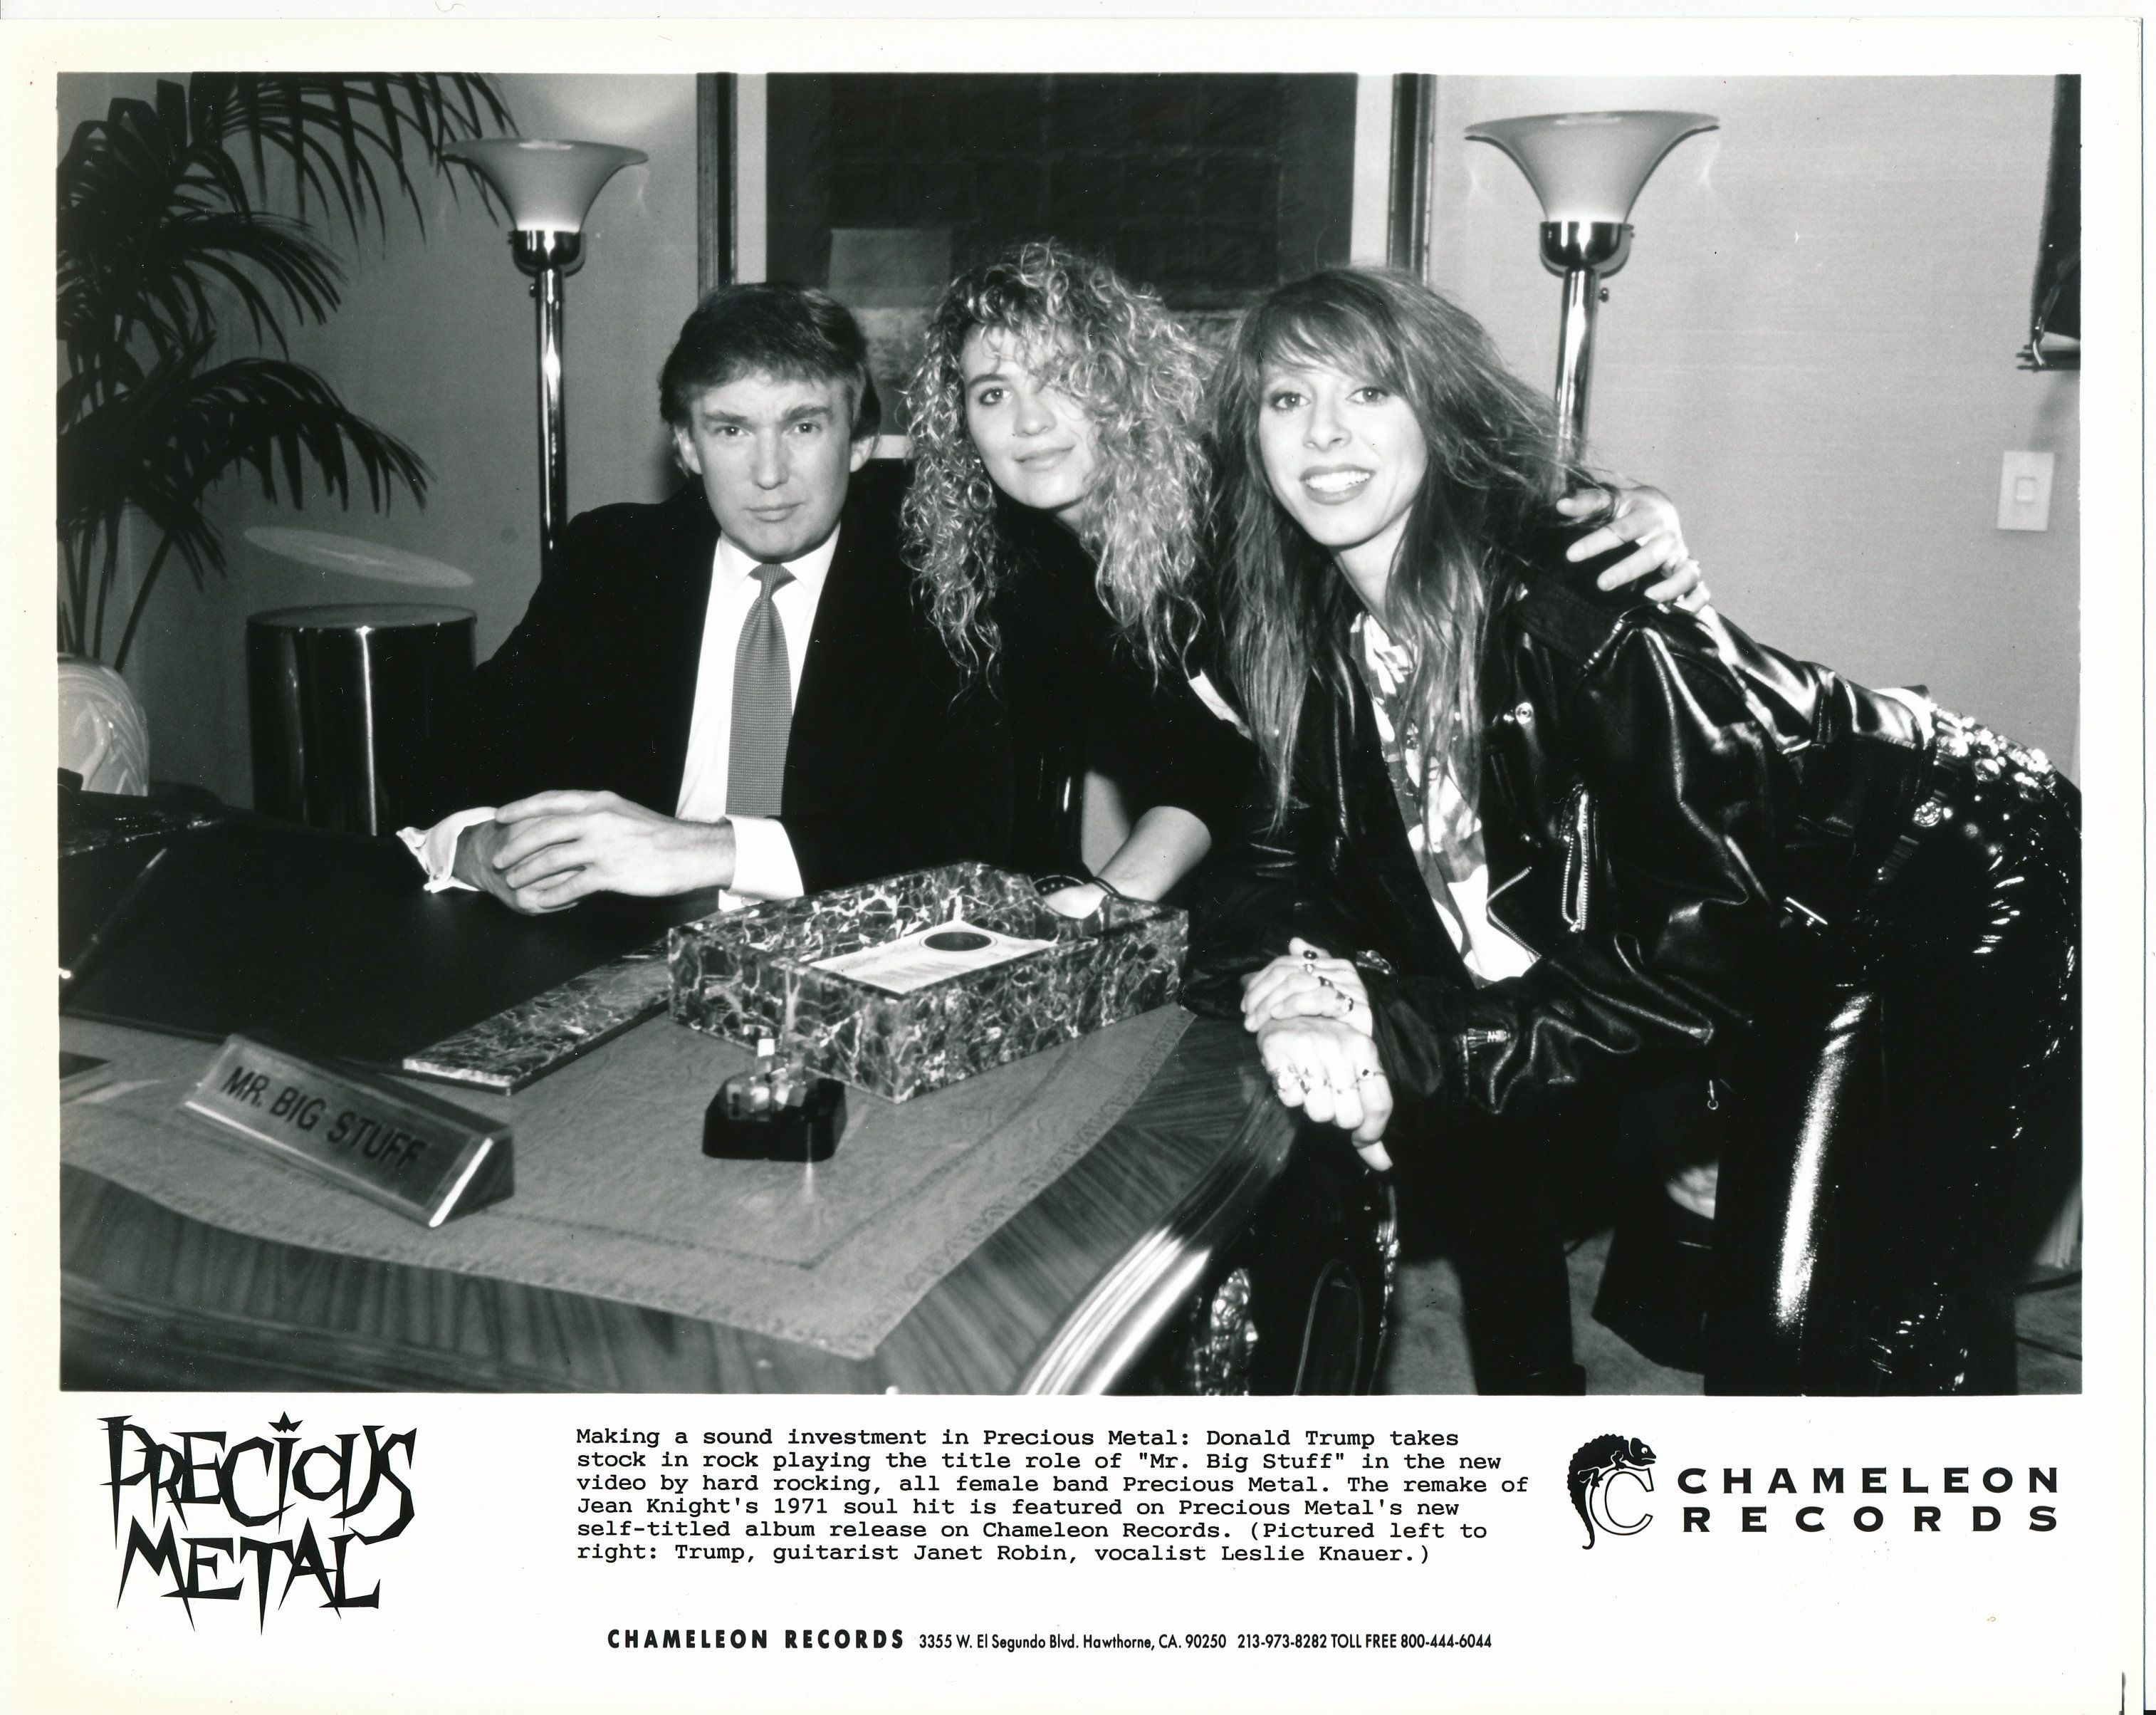 "Donald Trump seated next to Janet Robin (guitarist) and Leslie Knauer (vocalist) of Precious Metal. Courtesy <a href=""http://"